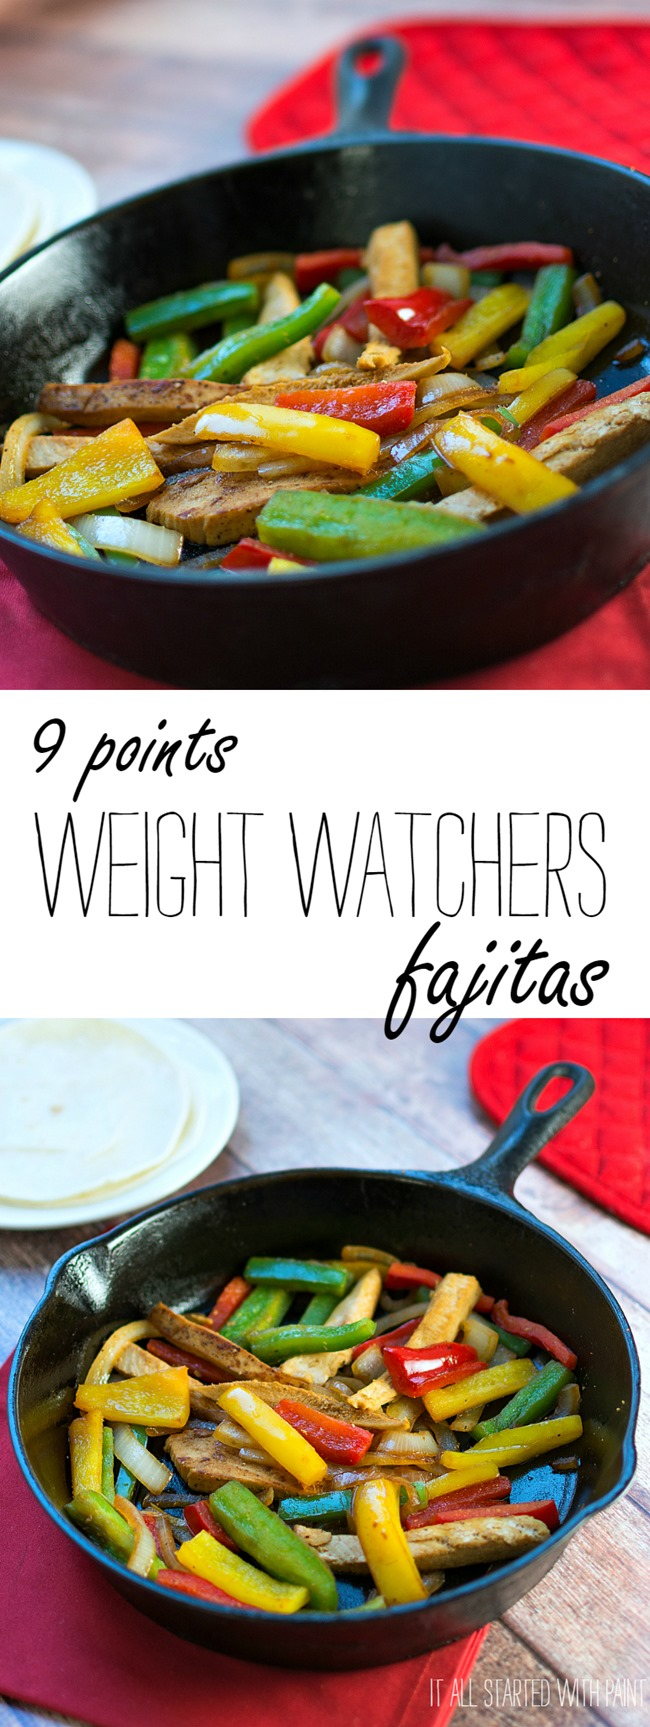 Weight Watches Fajita Recipe - Healthy Chicken Fajita Recipe